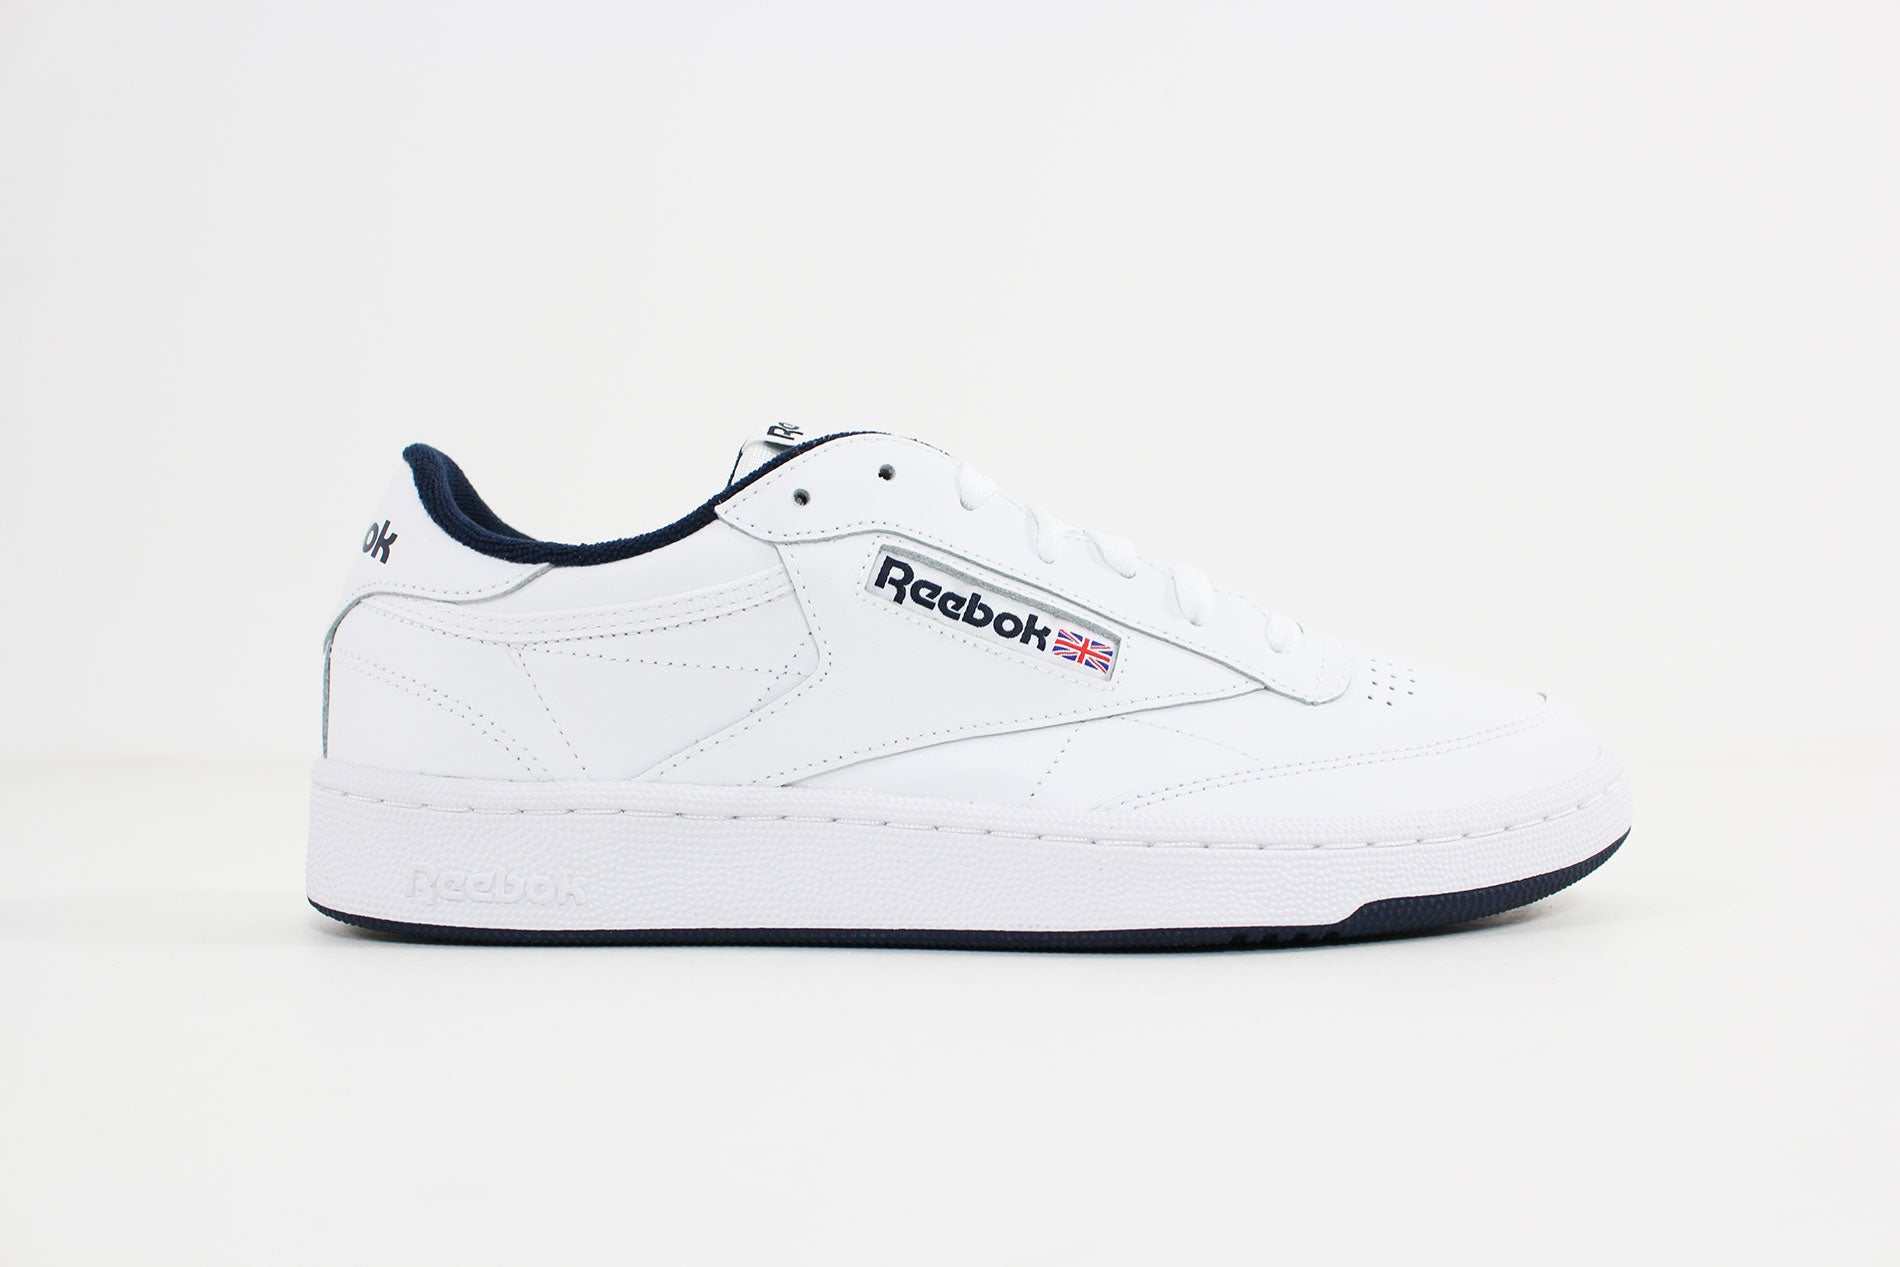 Reebok - Club C 85 (White/Navy) AR0457